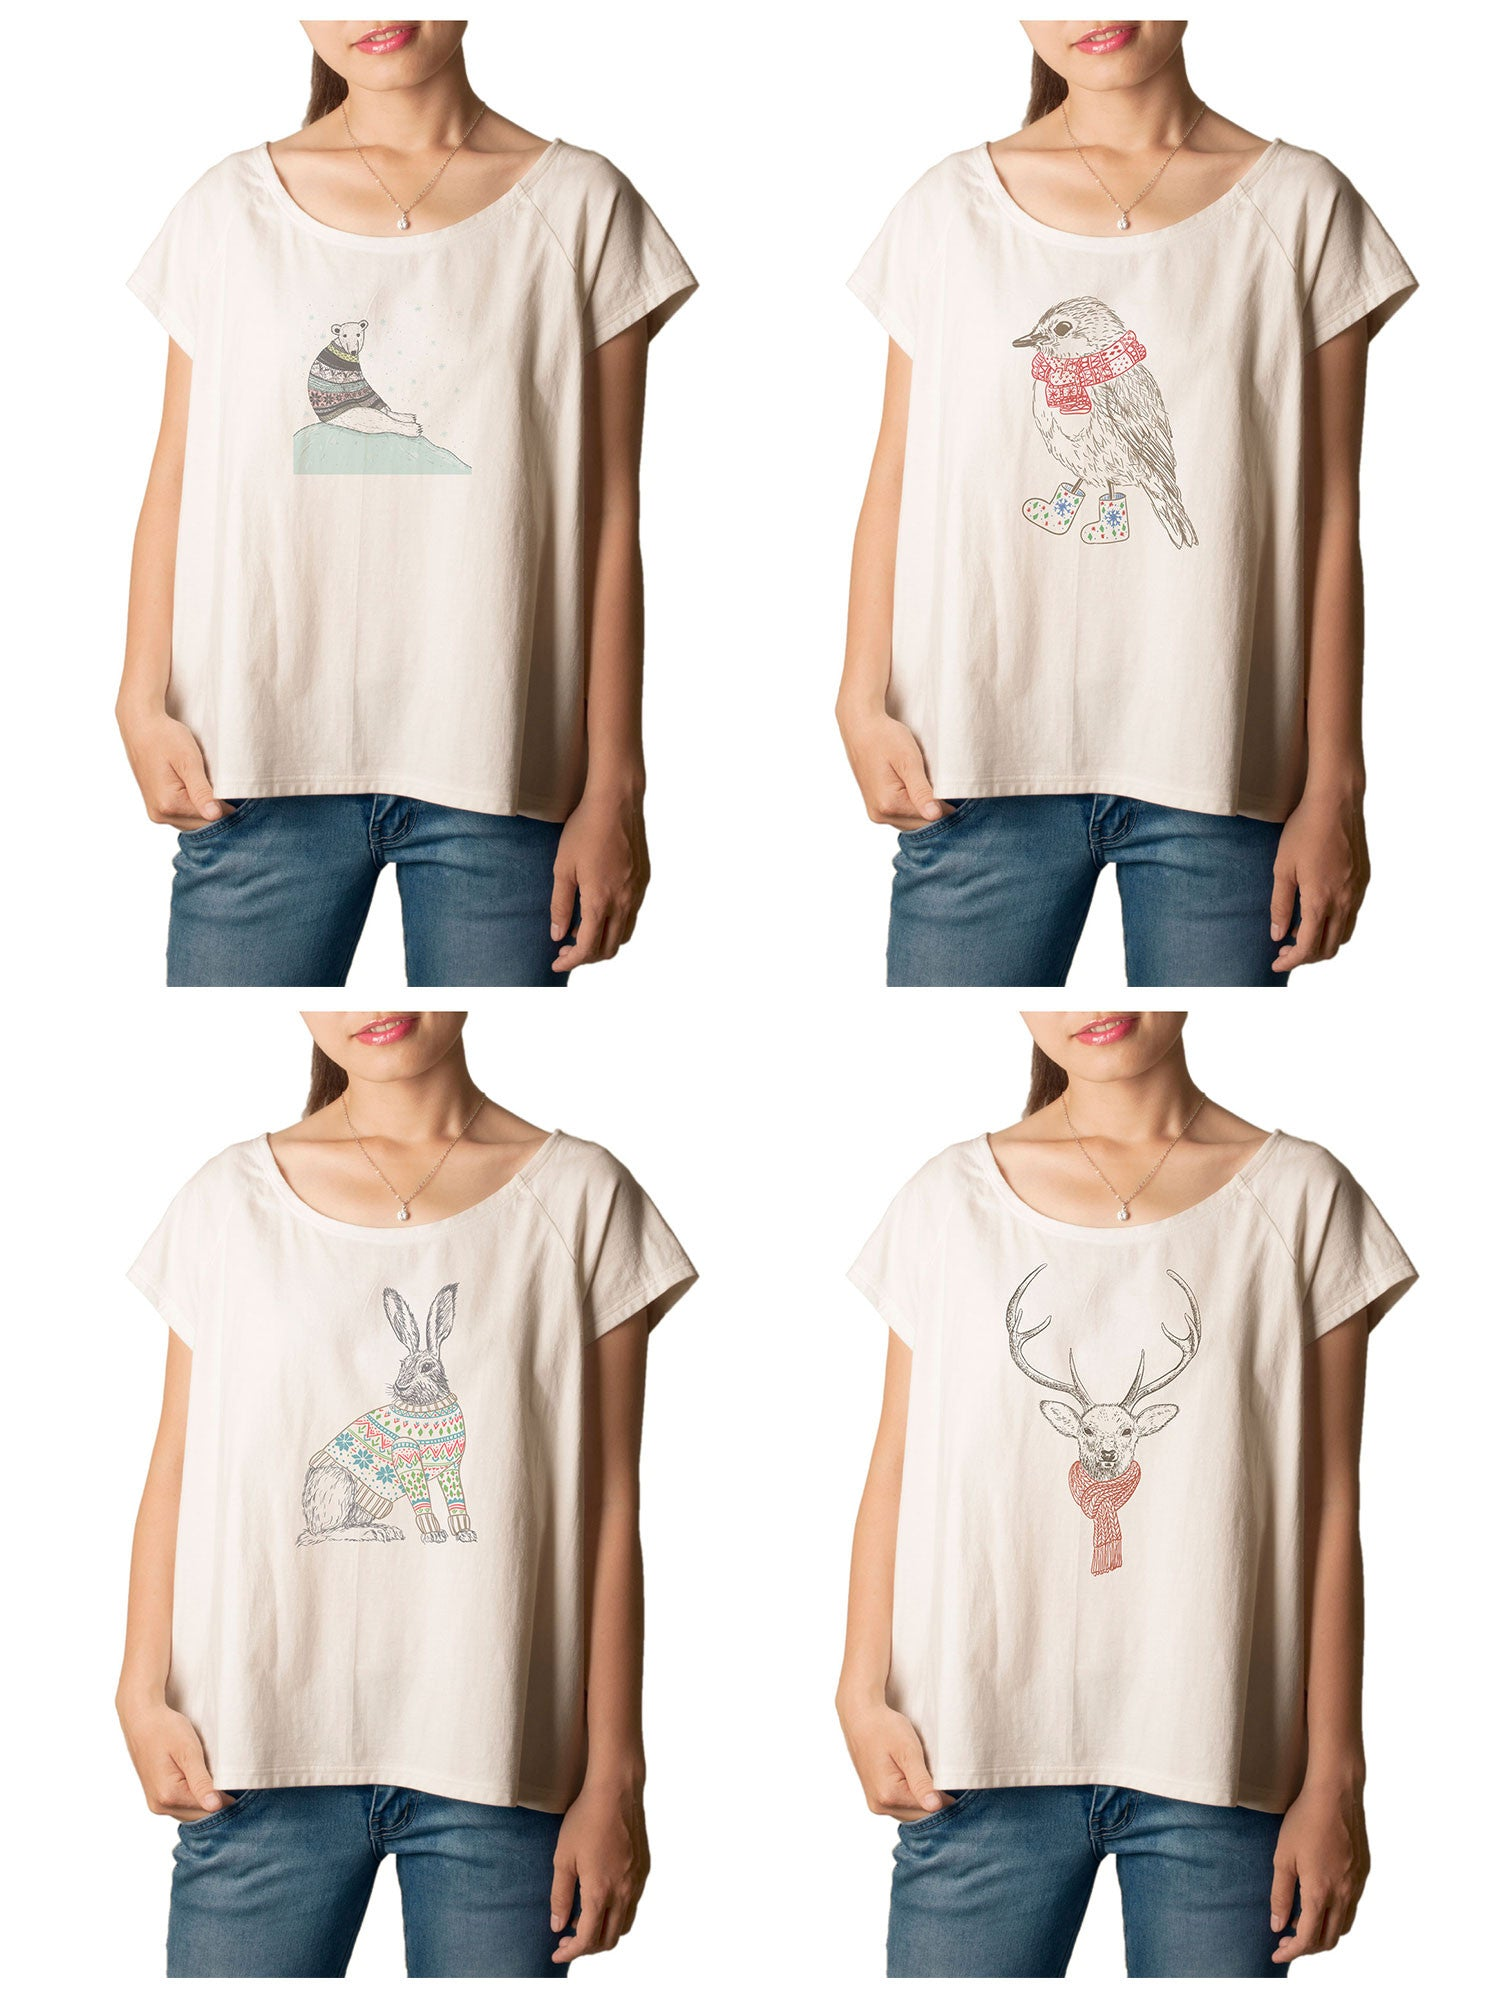 Women's Animals in sweater Printed cotton T-shirt  Tee WTS_01